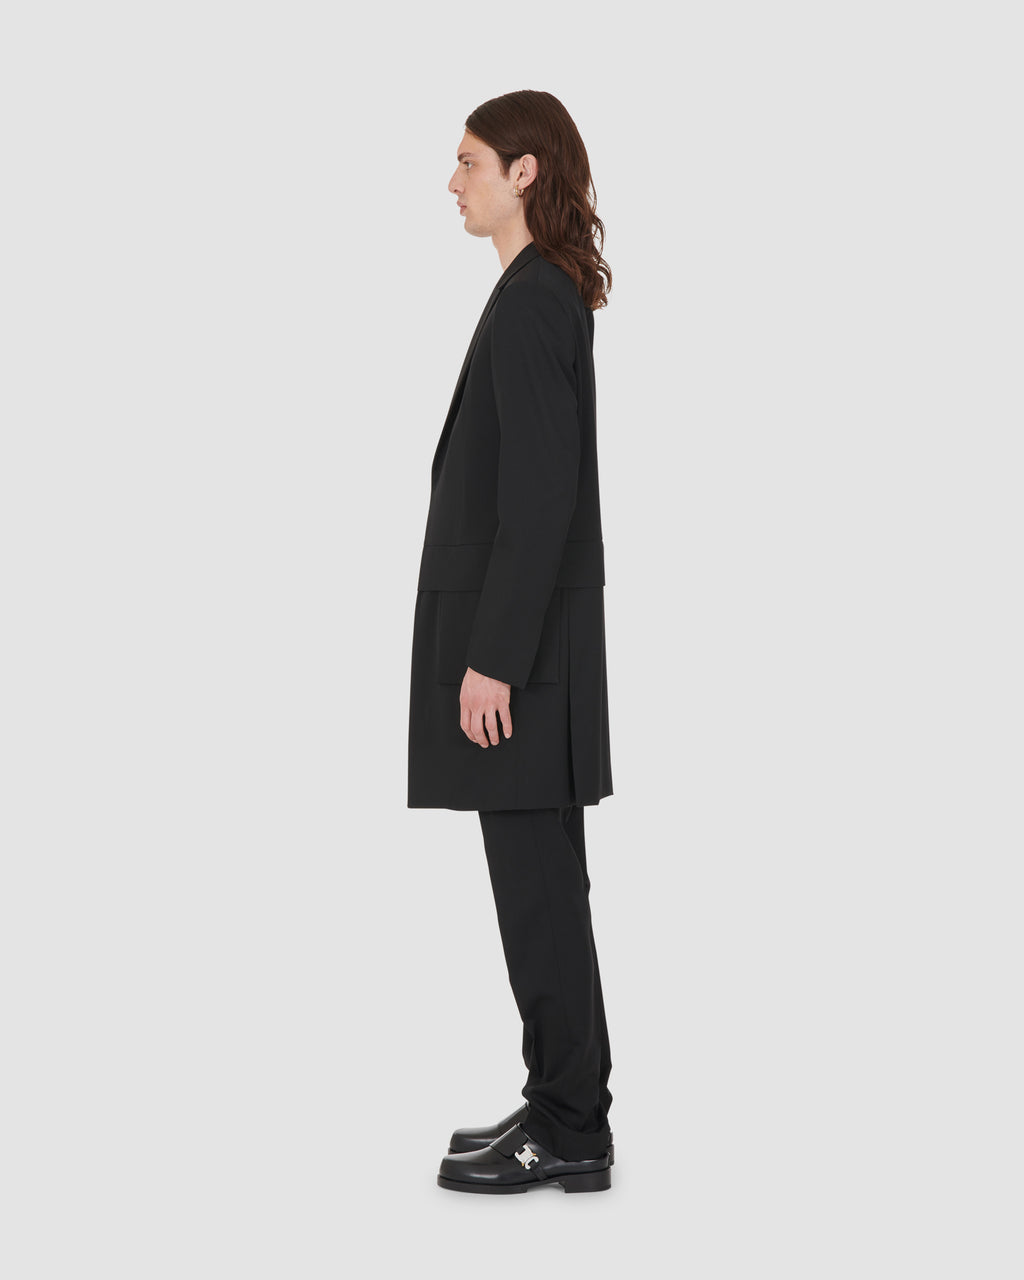 1017 ALYX 9SM | APEX COAT | Outerwear | BLACK, Google Shopping, Man, MEN, Outerwear, S20, SS20, TAILORING